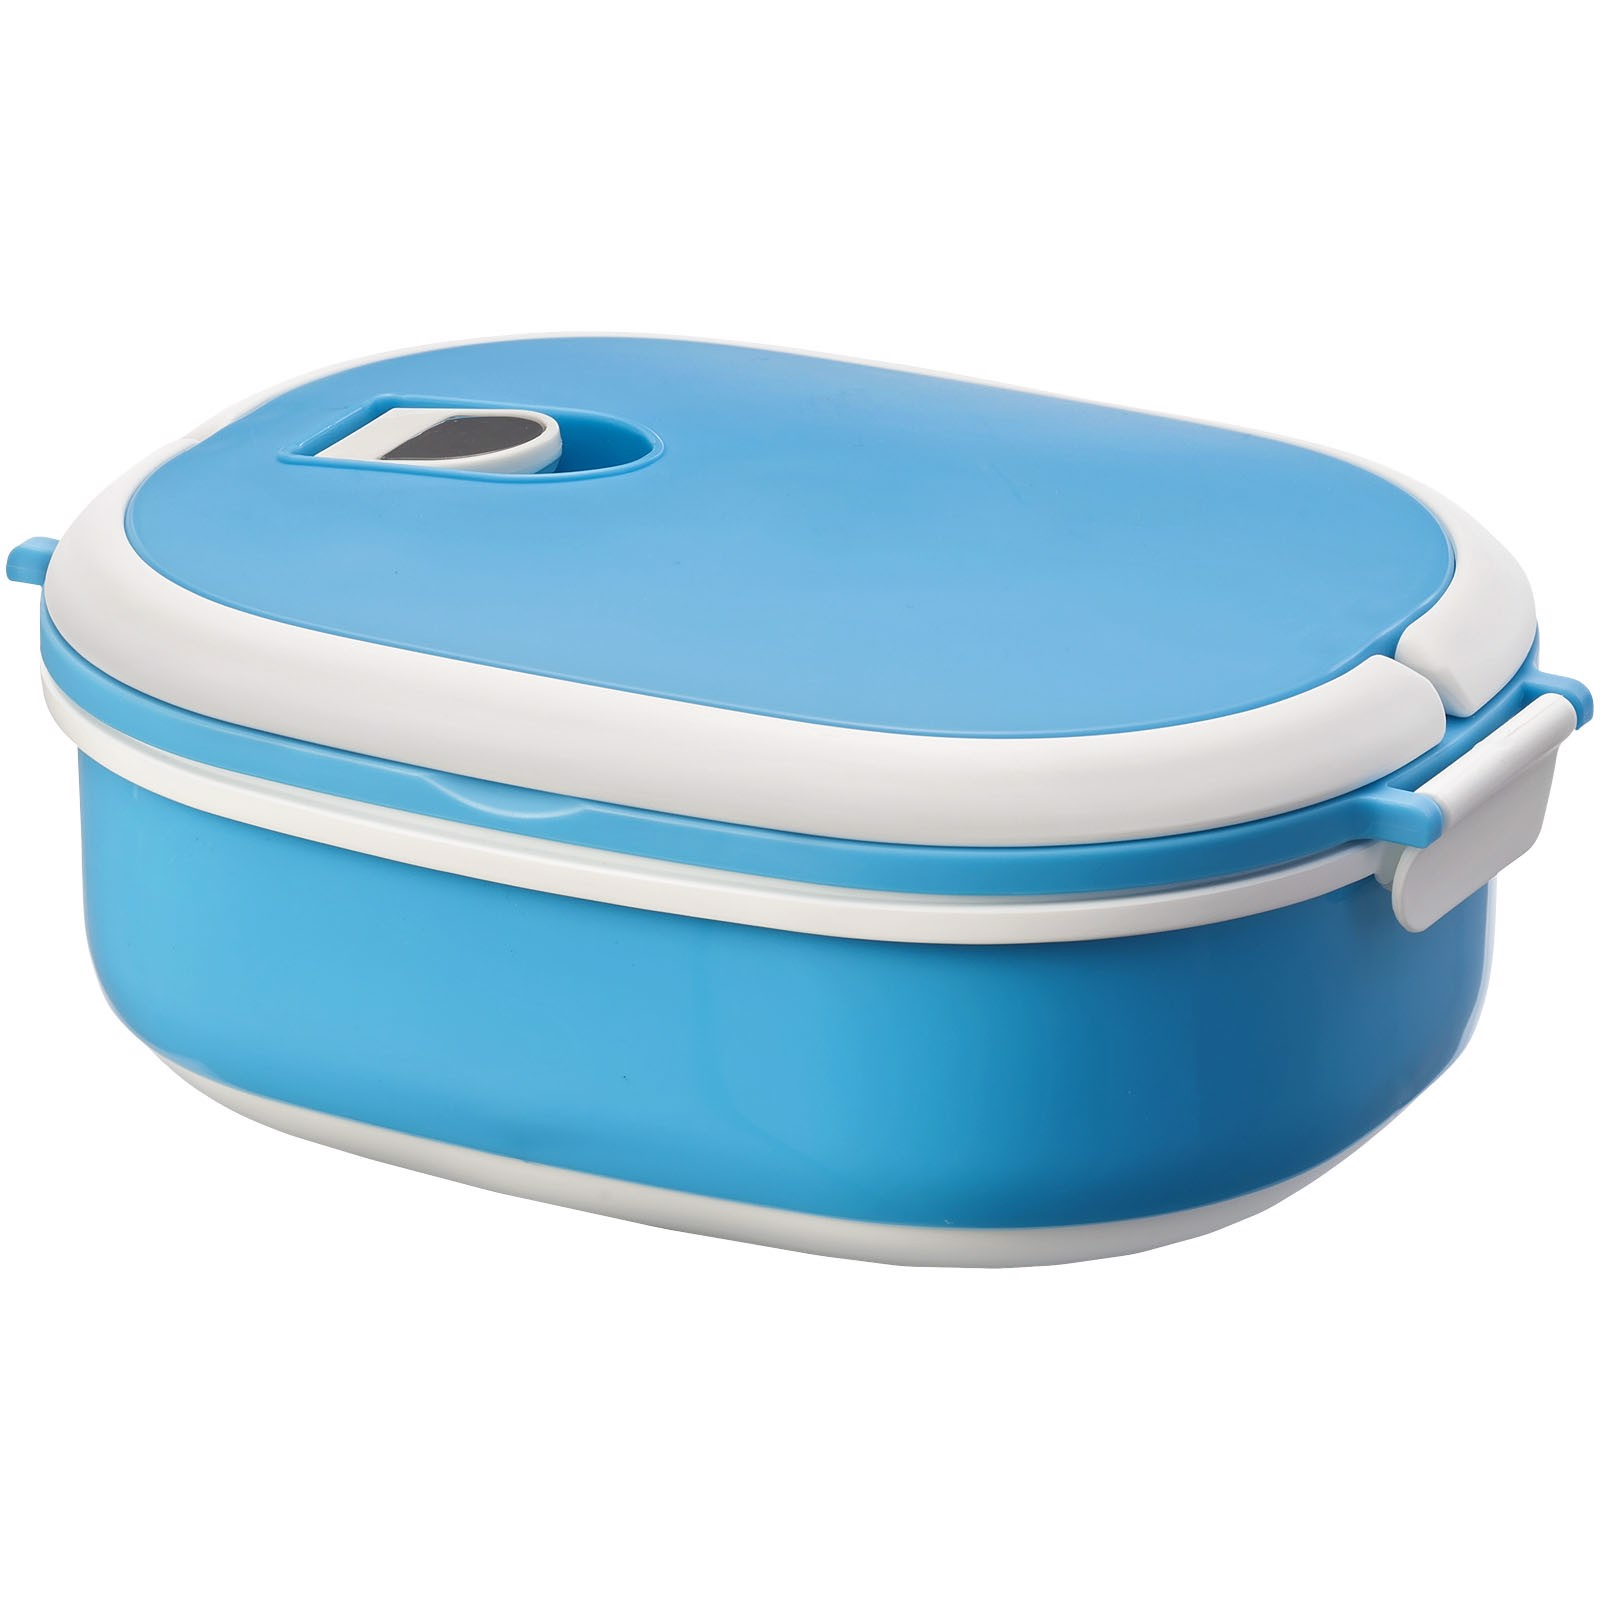 Spiga 750 ml lunch box - Blue / White